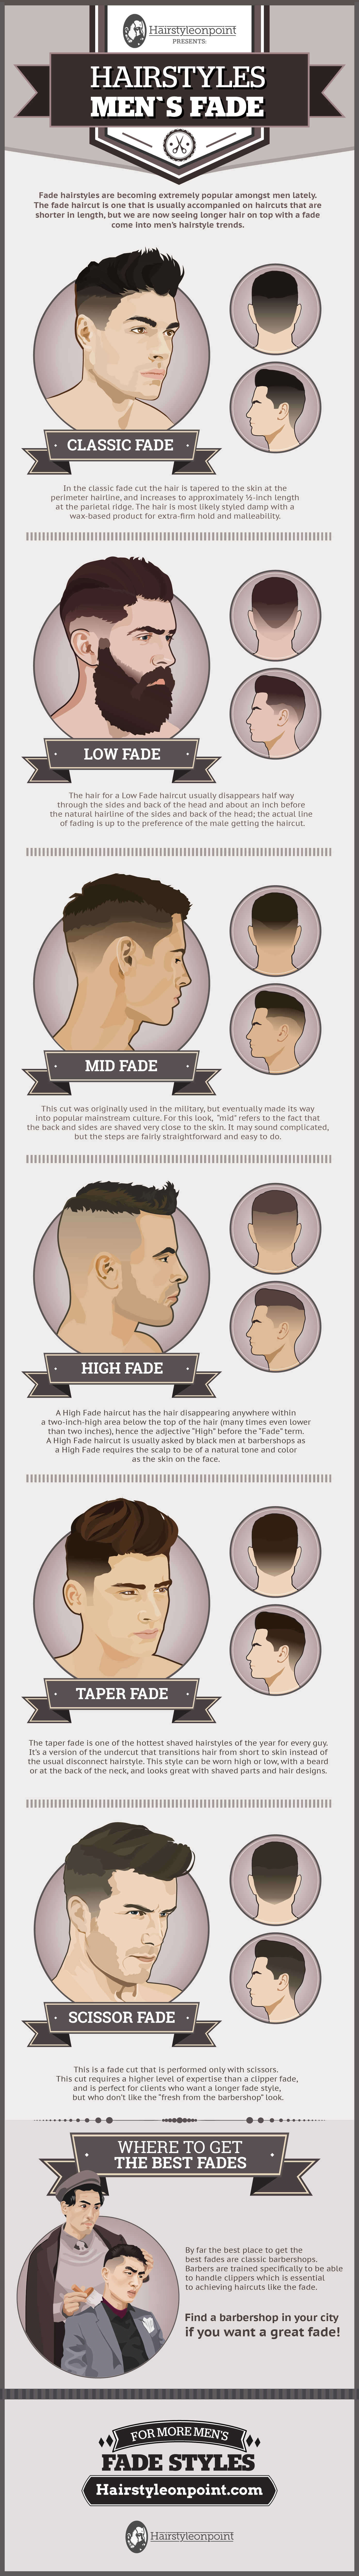 Side fade mens haircut menus hairstyles a simple guide to popular and modern fades  je